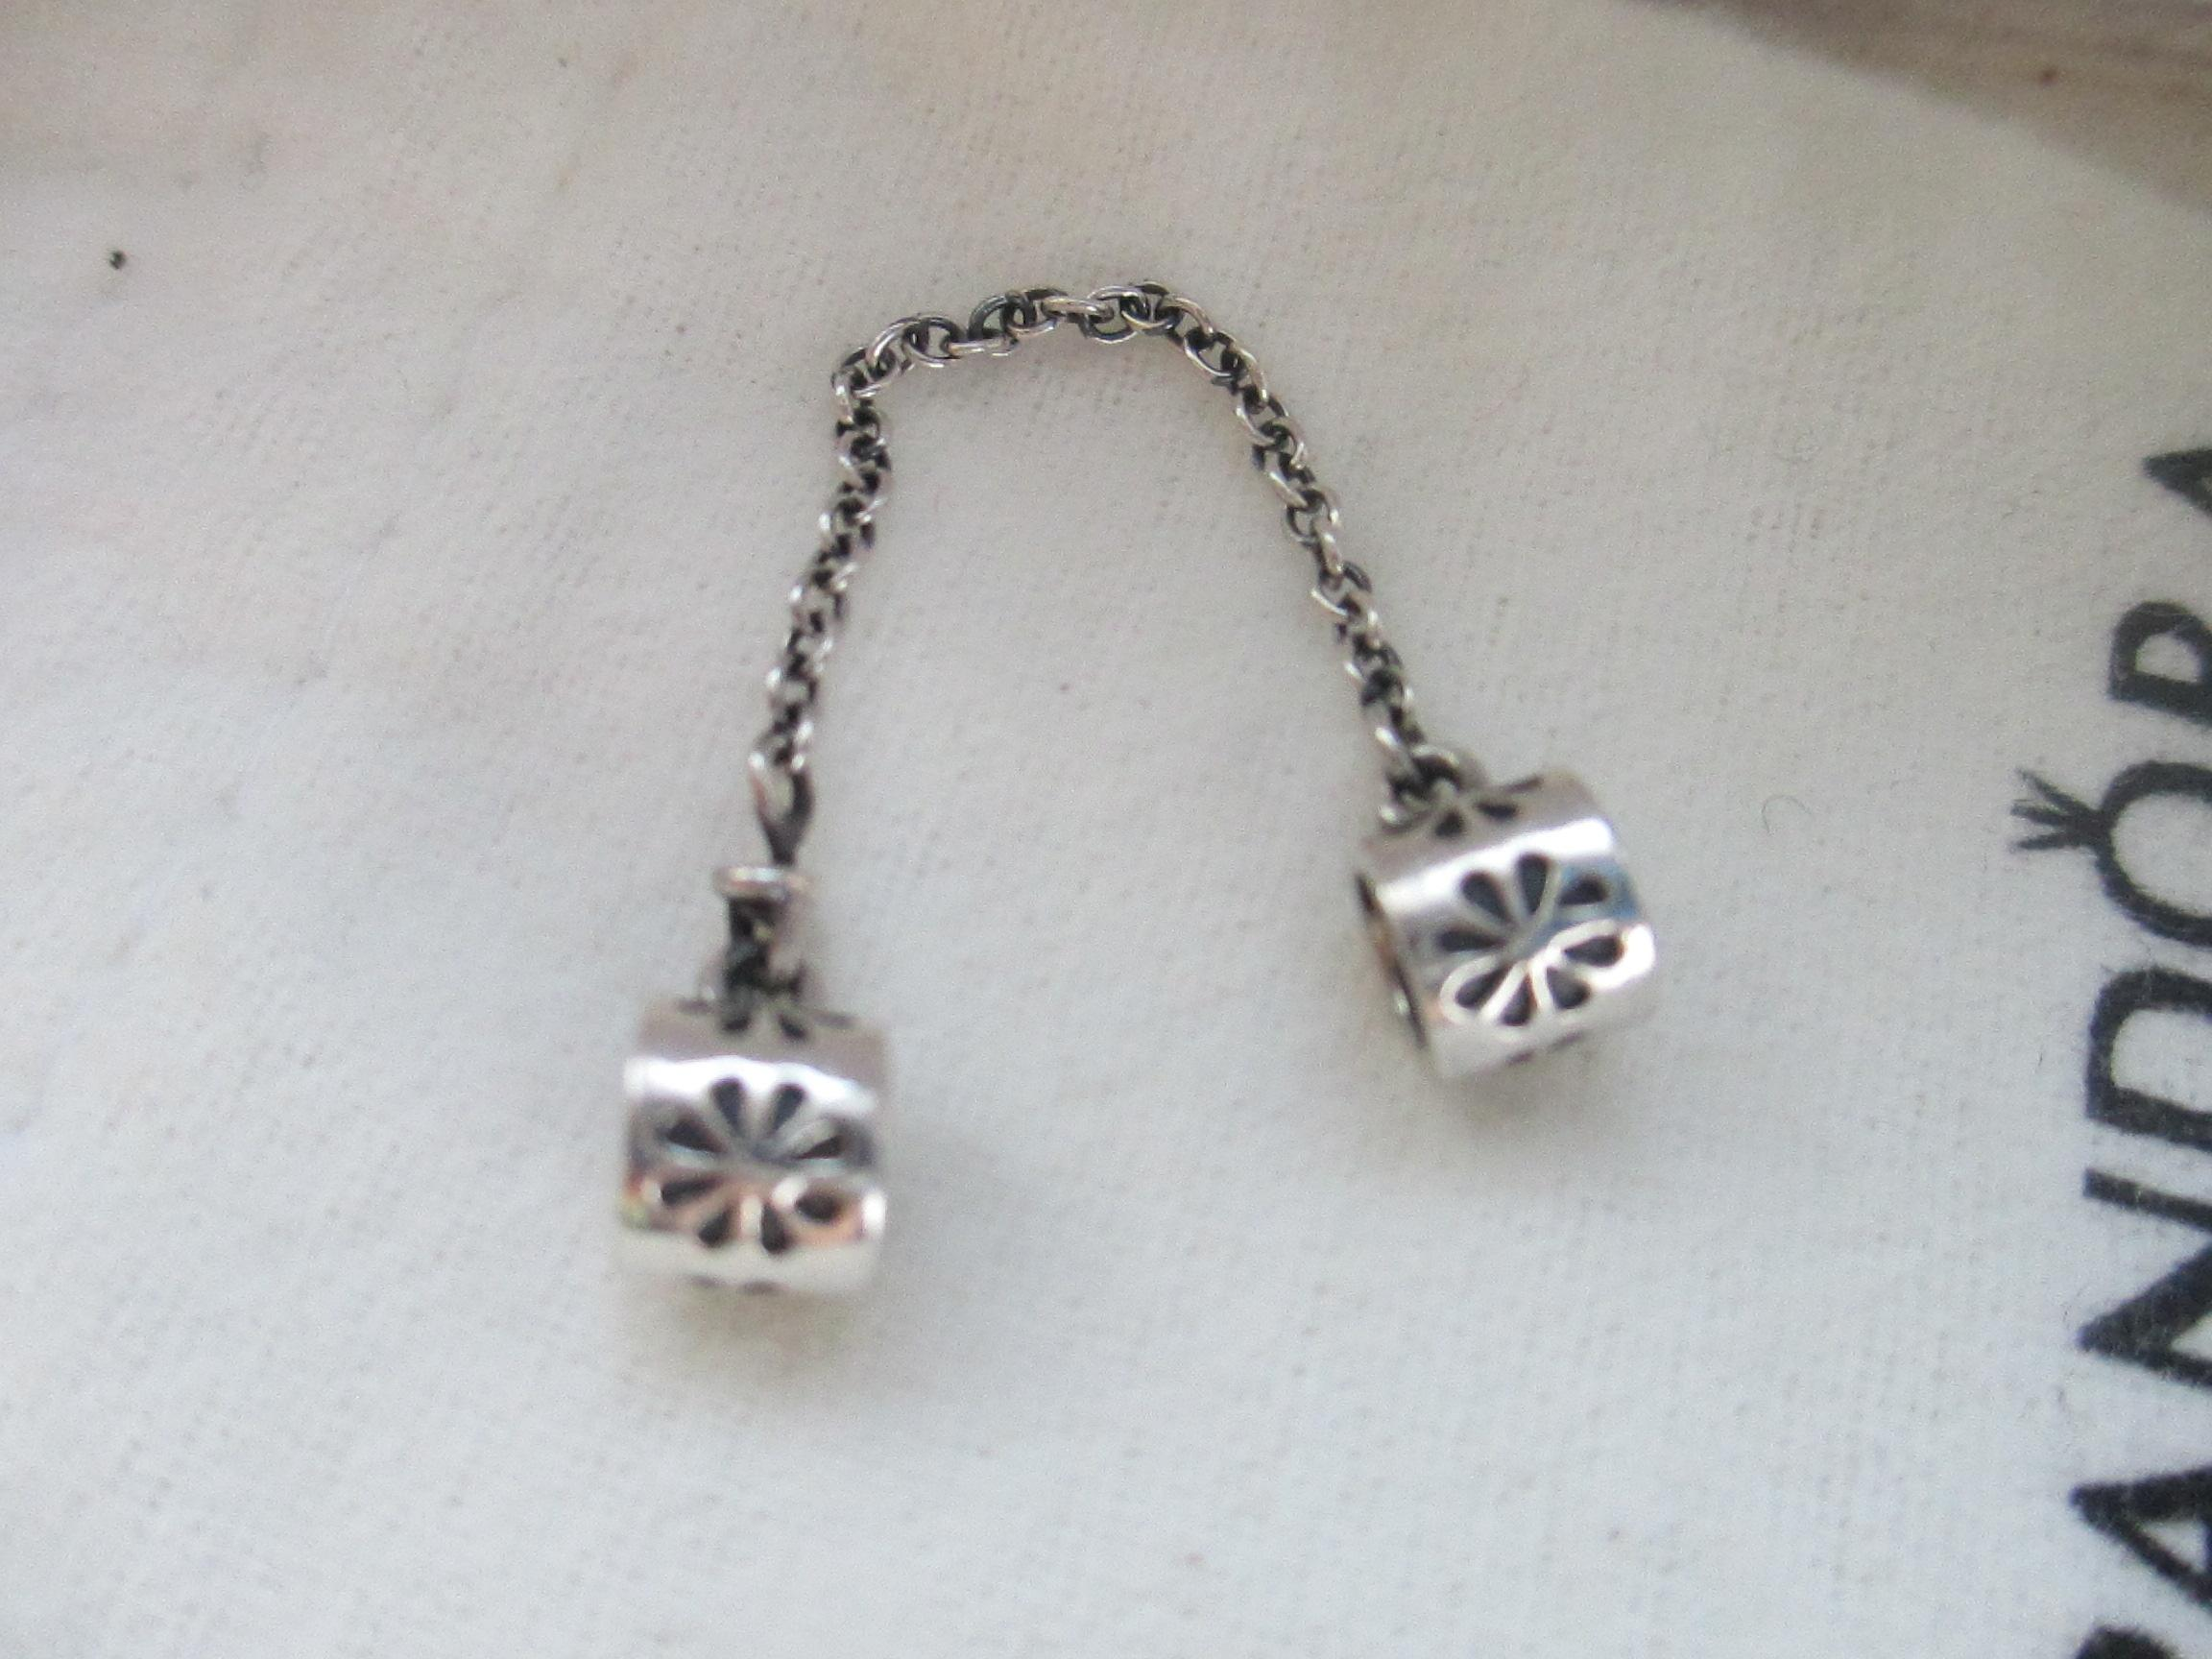 d9c363b18 ... reduced pandora authentic pandora sterling silver daisy flower safety  chain charm 790385. 12345 85c9b 8fd4e